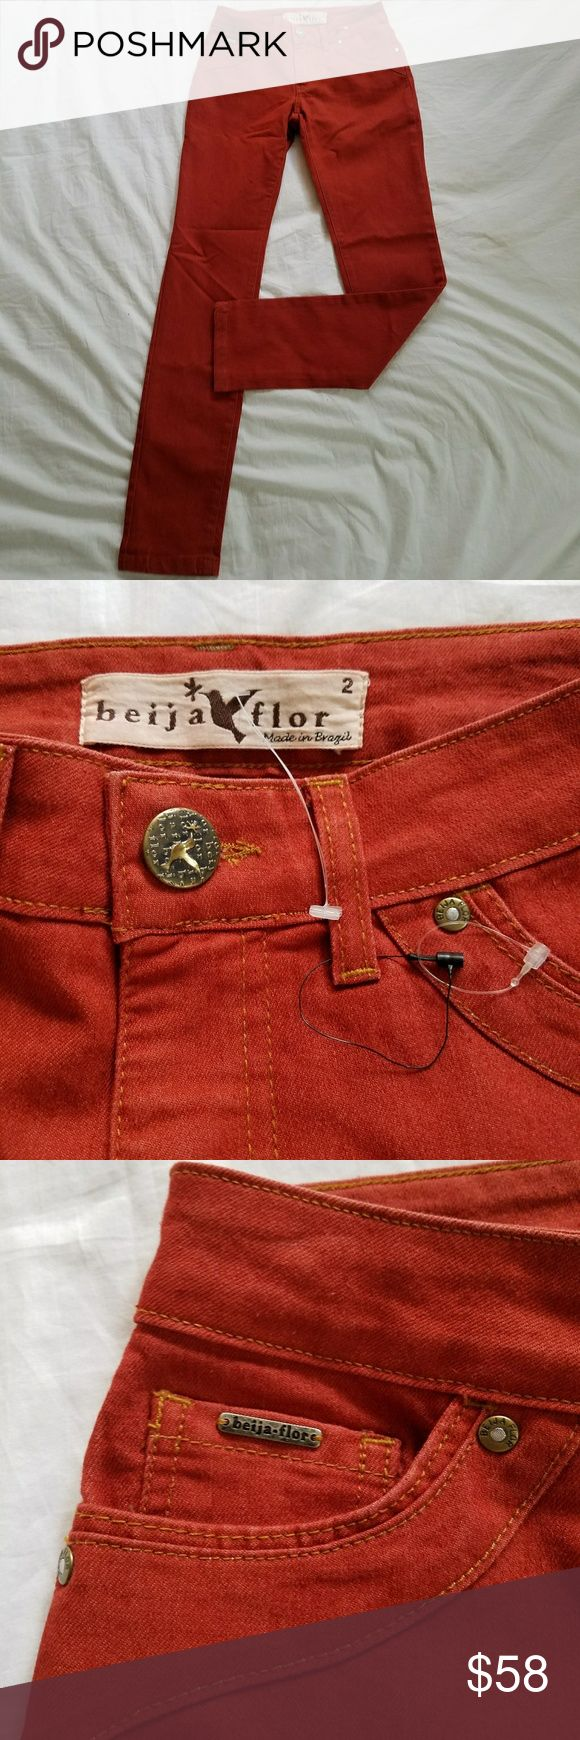 Beija Flor Skinny Jeans Designer jeans BNWOT. Awesome burnt orange color, style is Jennifer Skinny. Measurements approx* Inseam 31.5, waist 14, and rise 8.5 inches. Beija Flor Jeans Skinny